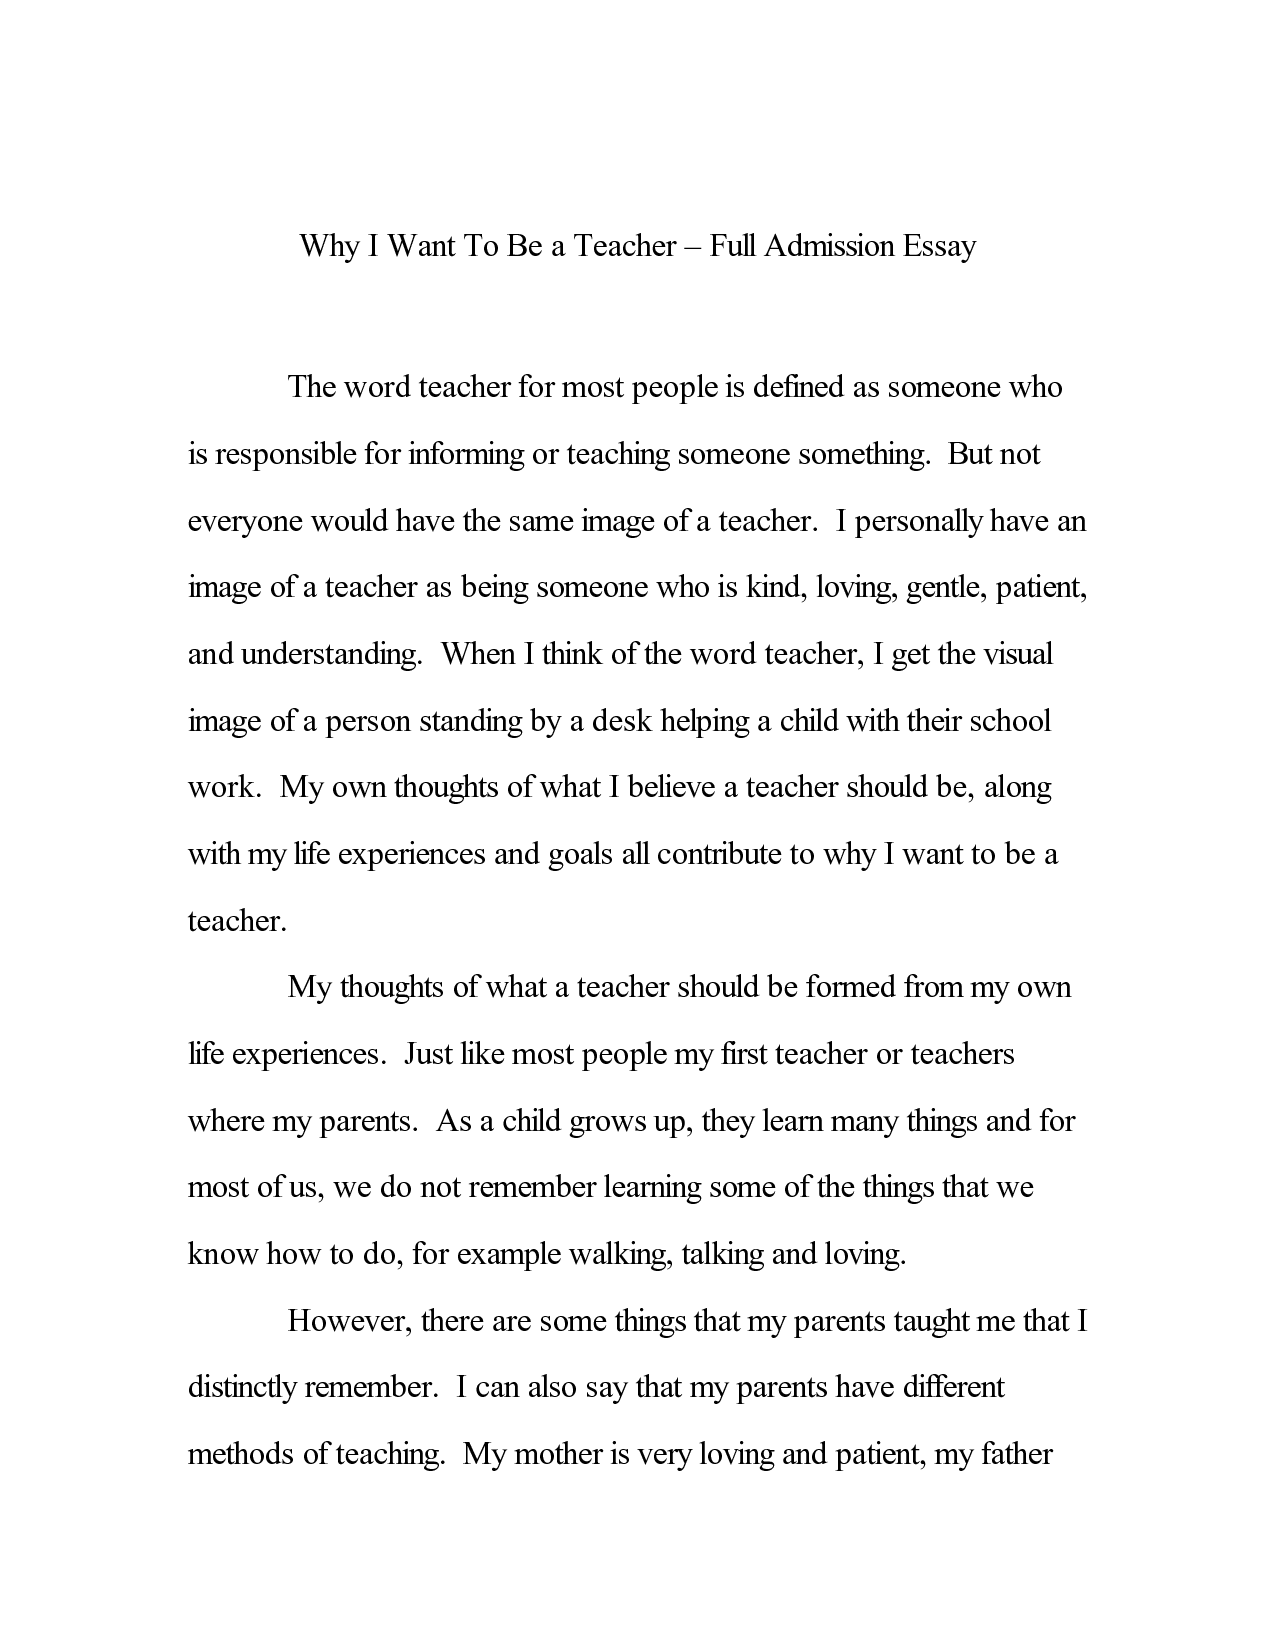 Professionally writing college admissions essay teaching